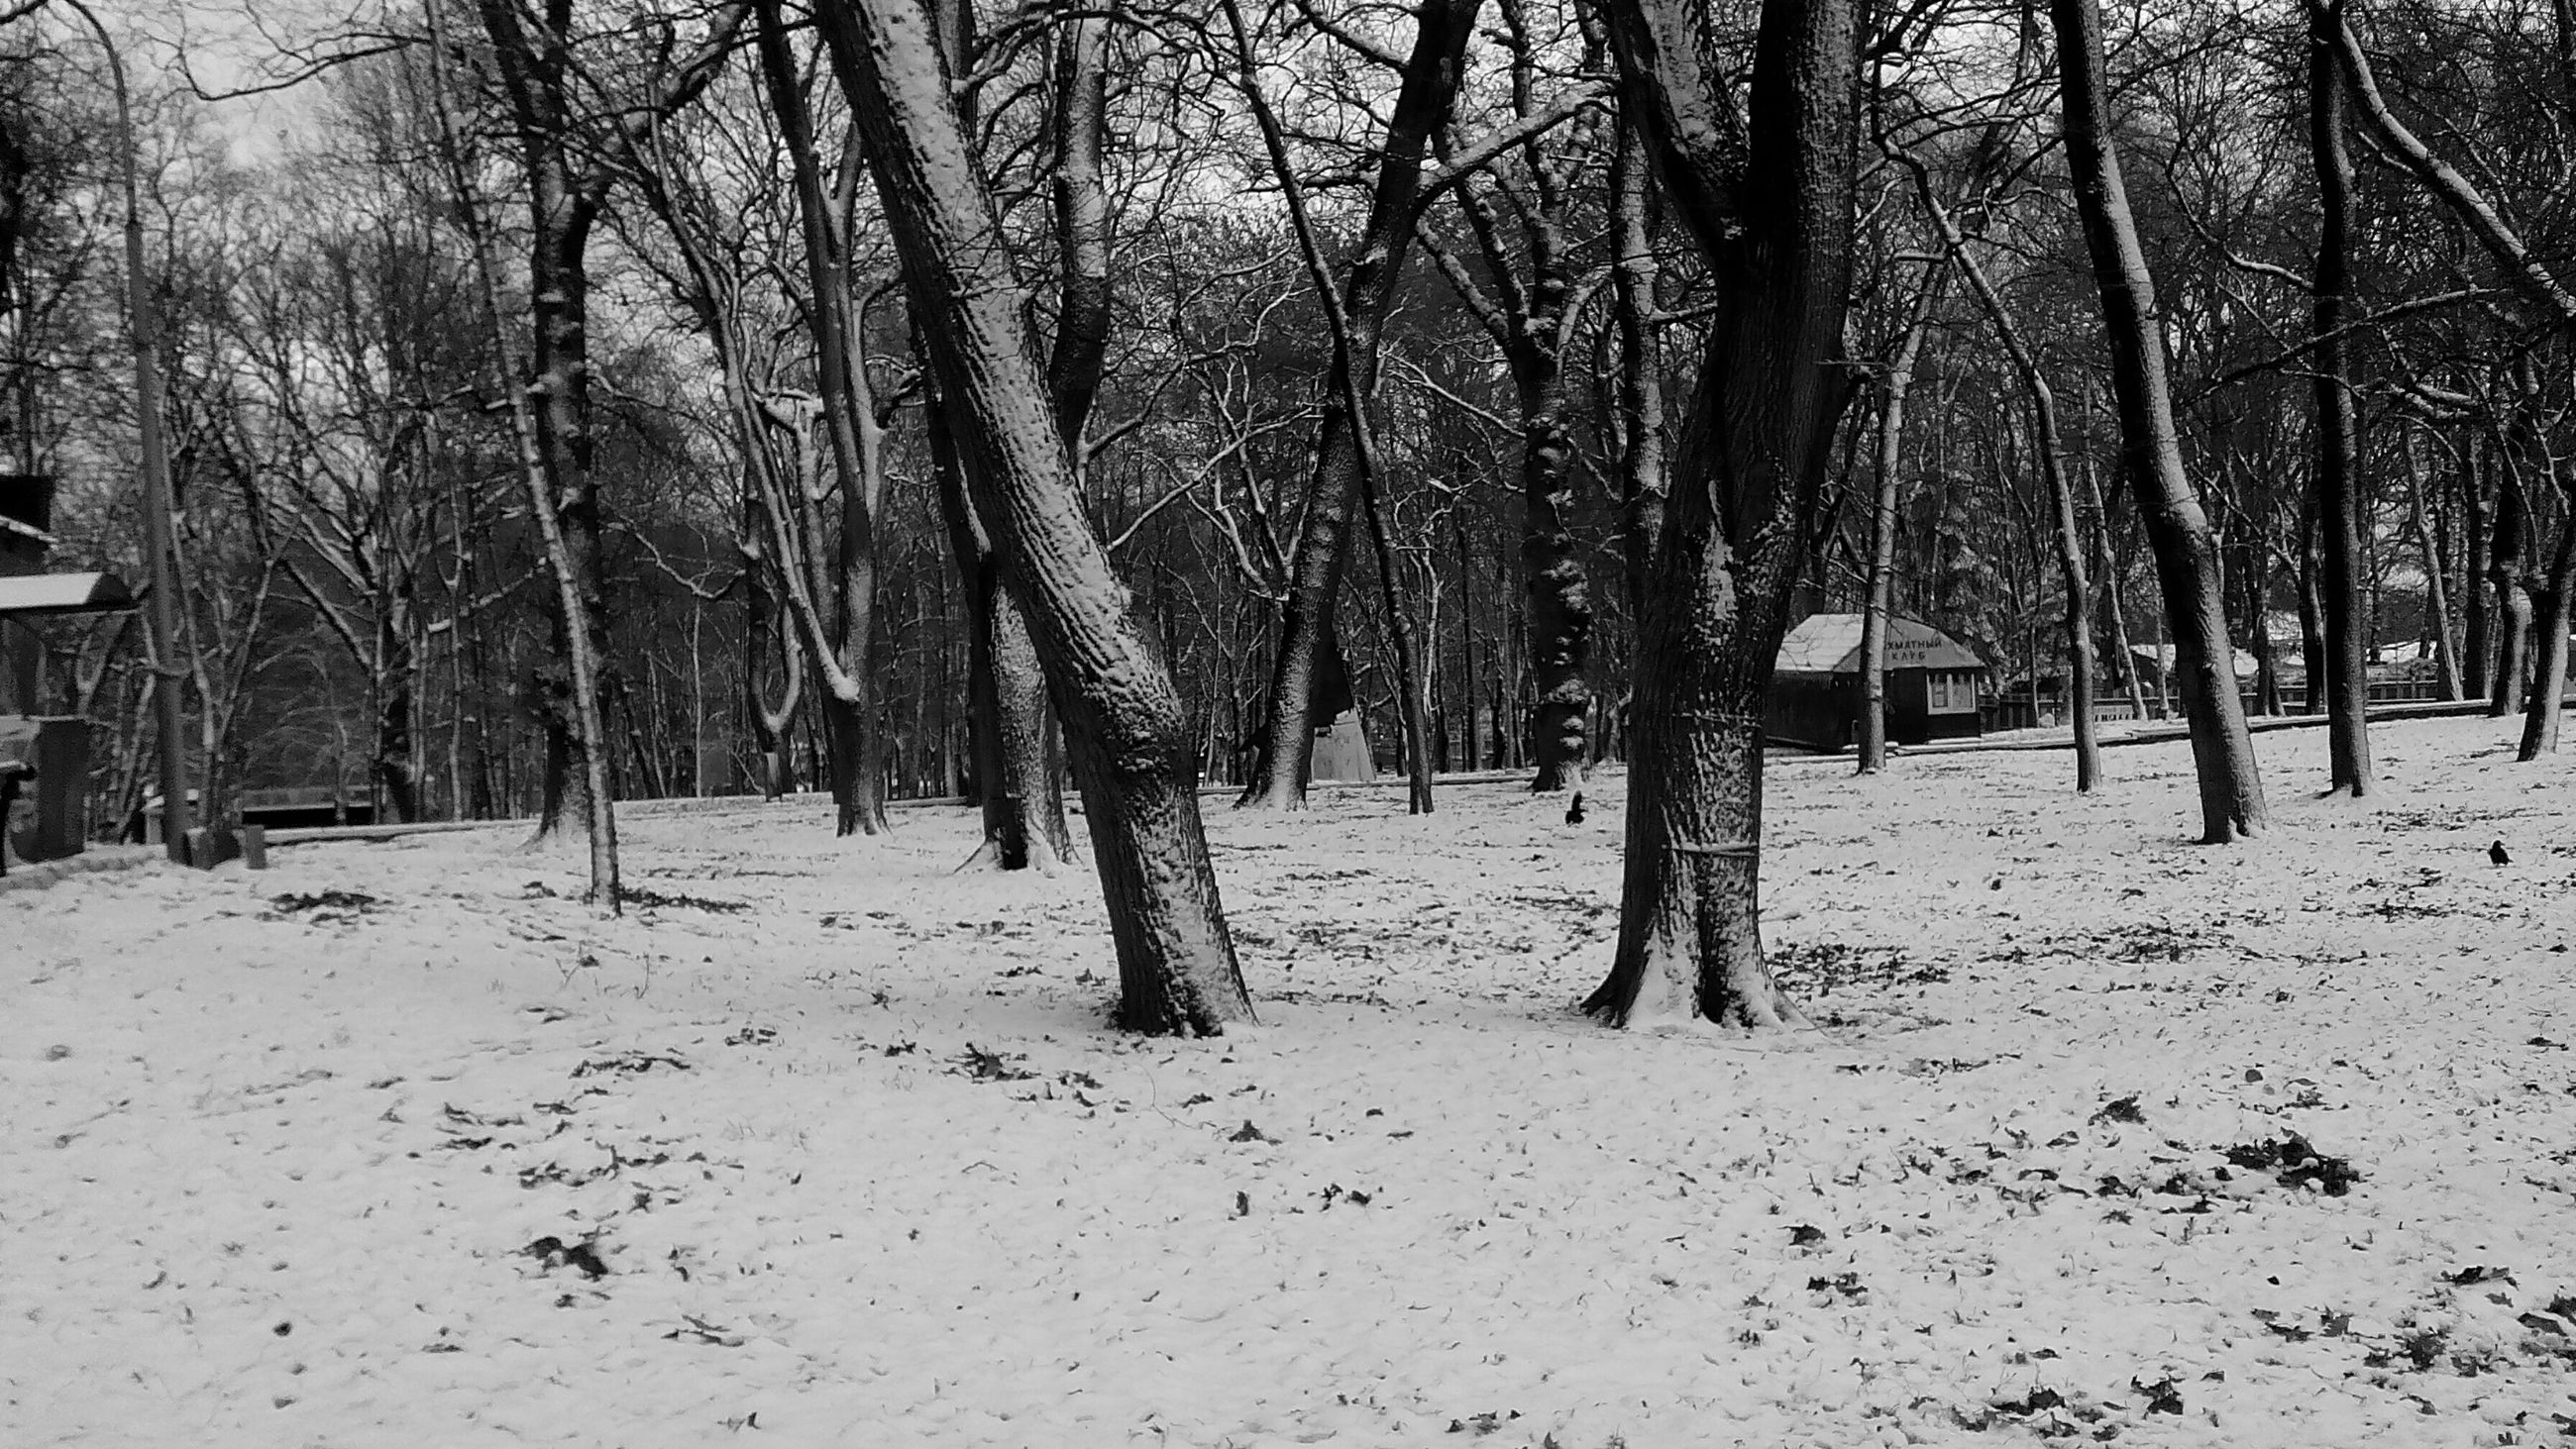 tree, winter, snow, tree trunk, cold temperature, season, bare tree, tranquility, nature, tranquil scene, branch, covering, weather, landscape, woodland, beauty in nature, forest, day, white color, growth